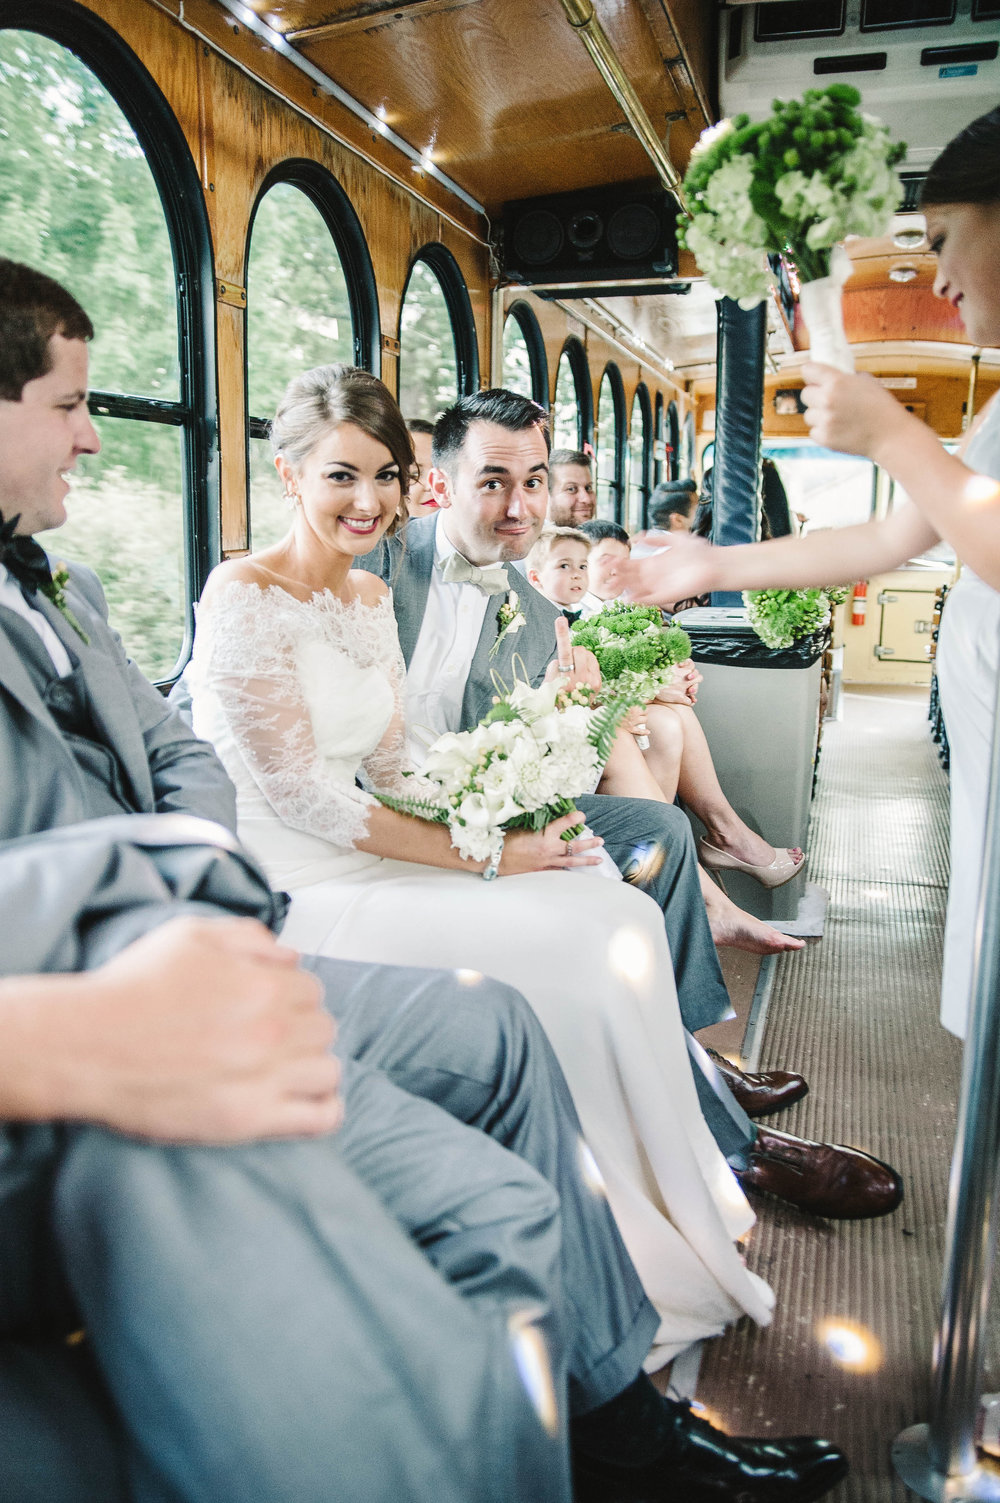 wedding party on trolley at Cheekwood Art & Garden wedding, Nashville, TN